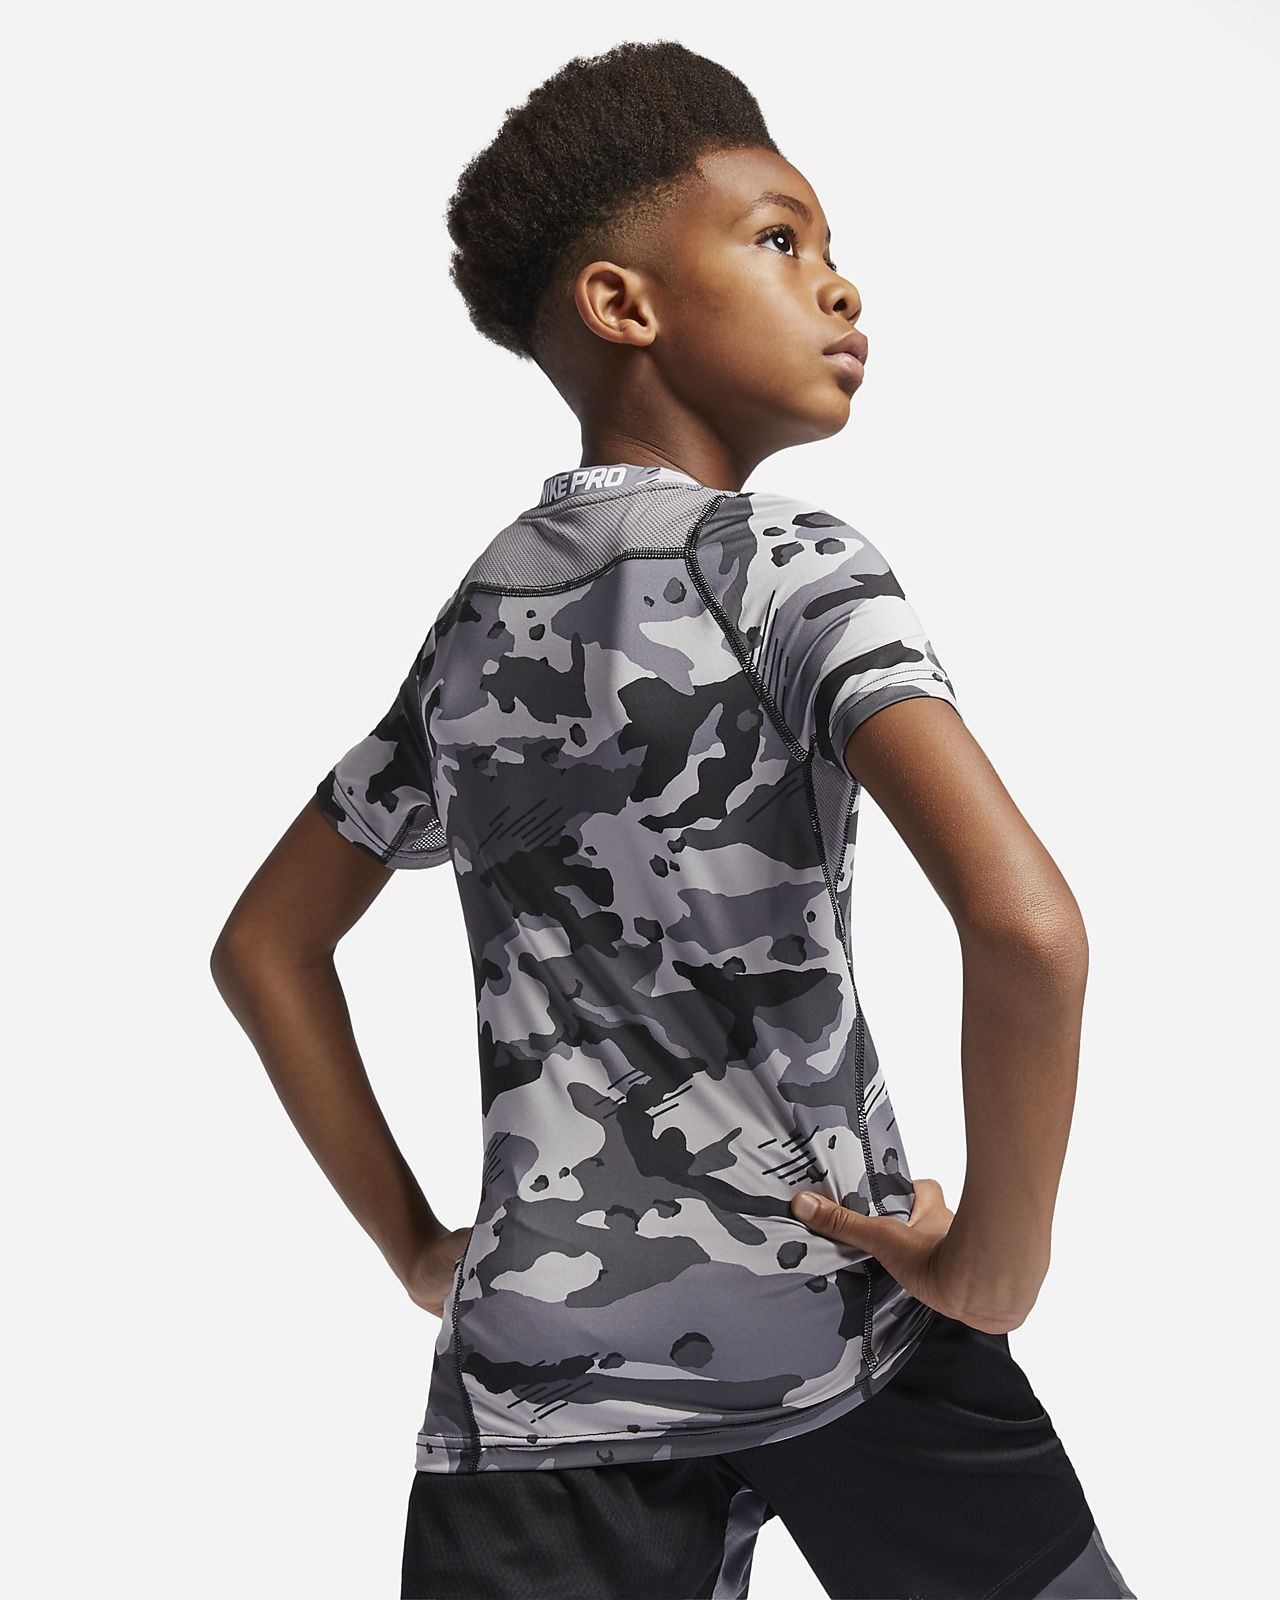 Nike Pro Big Kids' (Boys') Short-Sleeve Printed Top